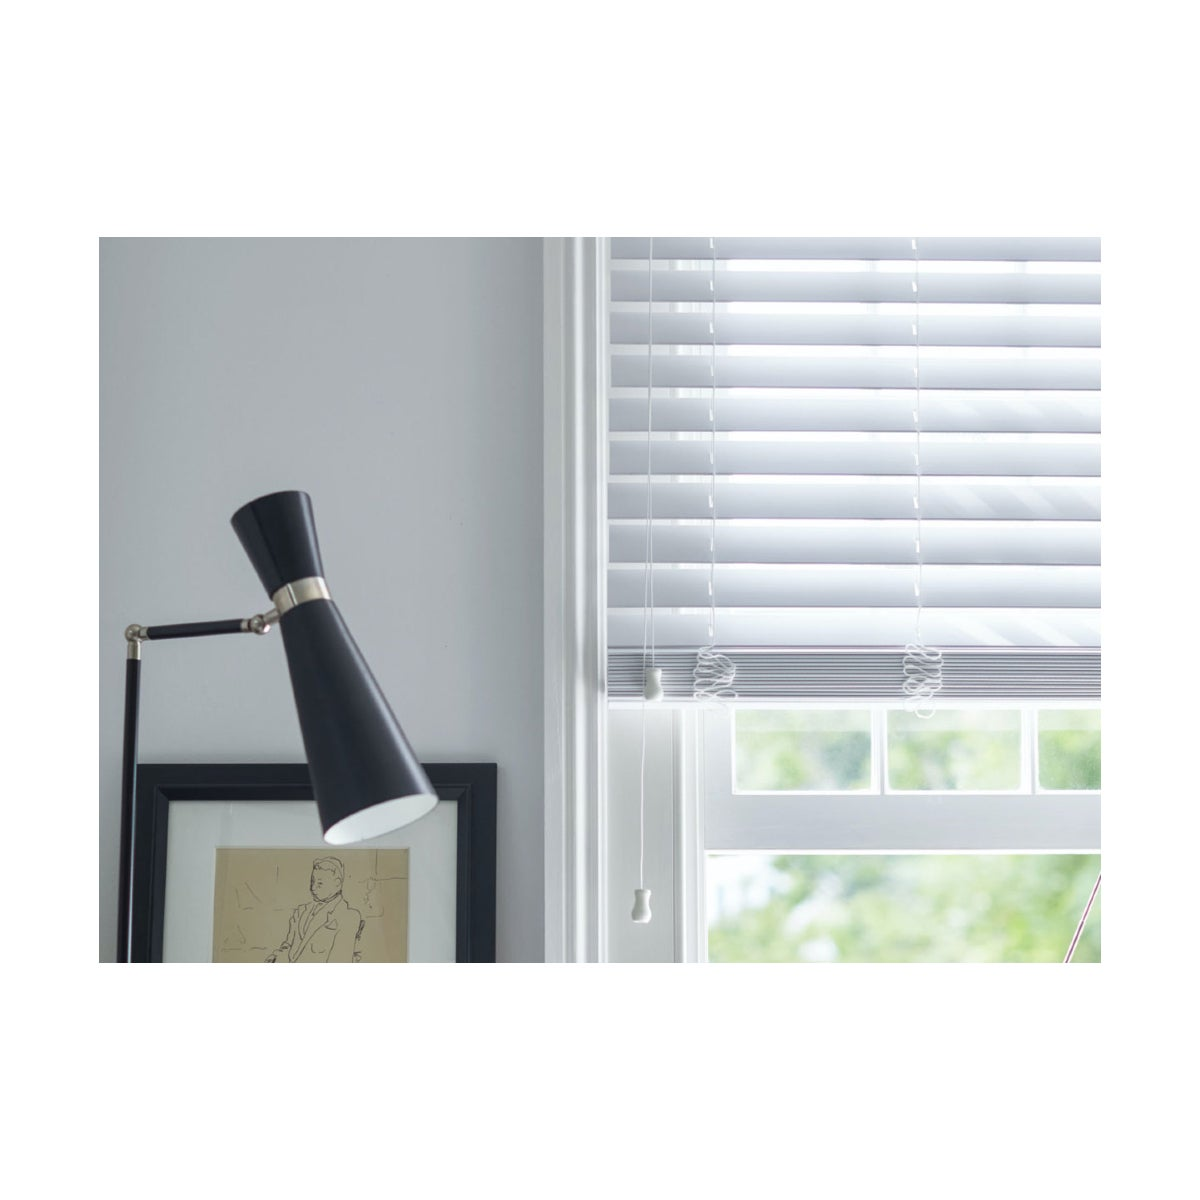 Best-Blinds-Option-The-Shade-Store-Wood-Blinds